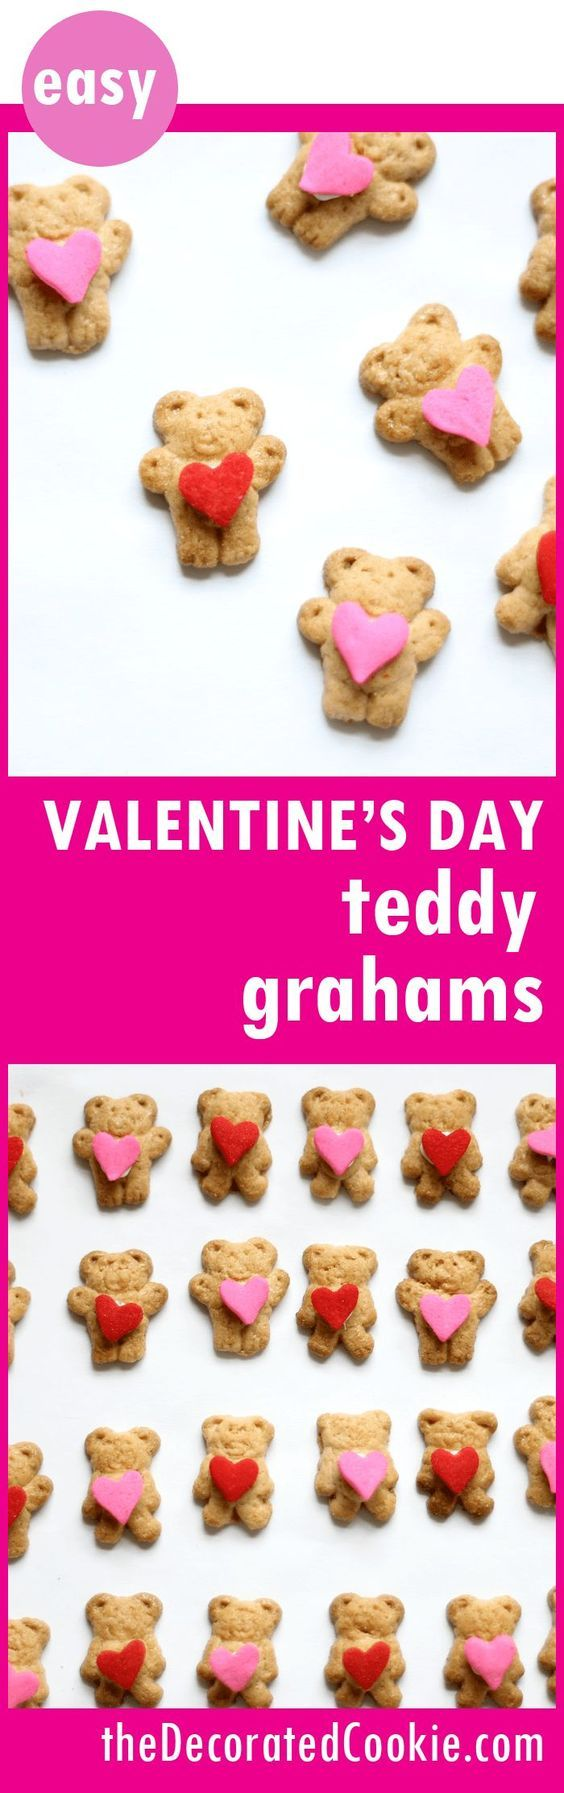 Valentine's Day heart-hugging Teddy Grahams, a cute and easy fun food treat for Valentine's Day using store-bought cookies.